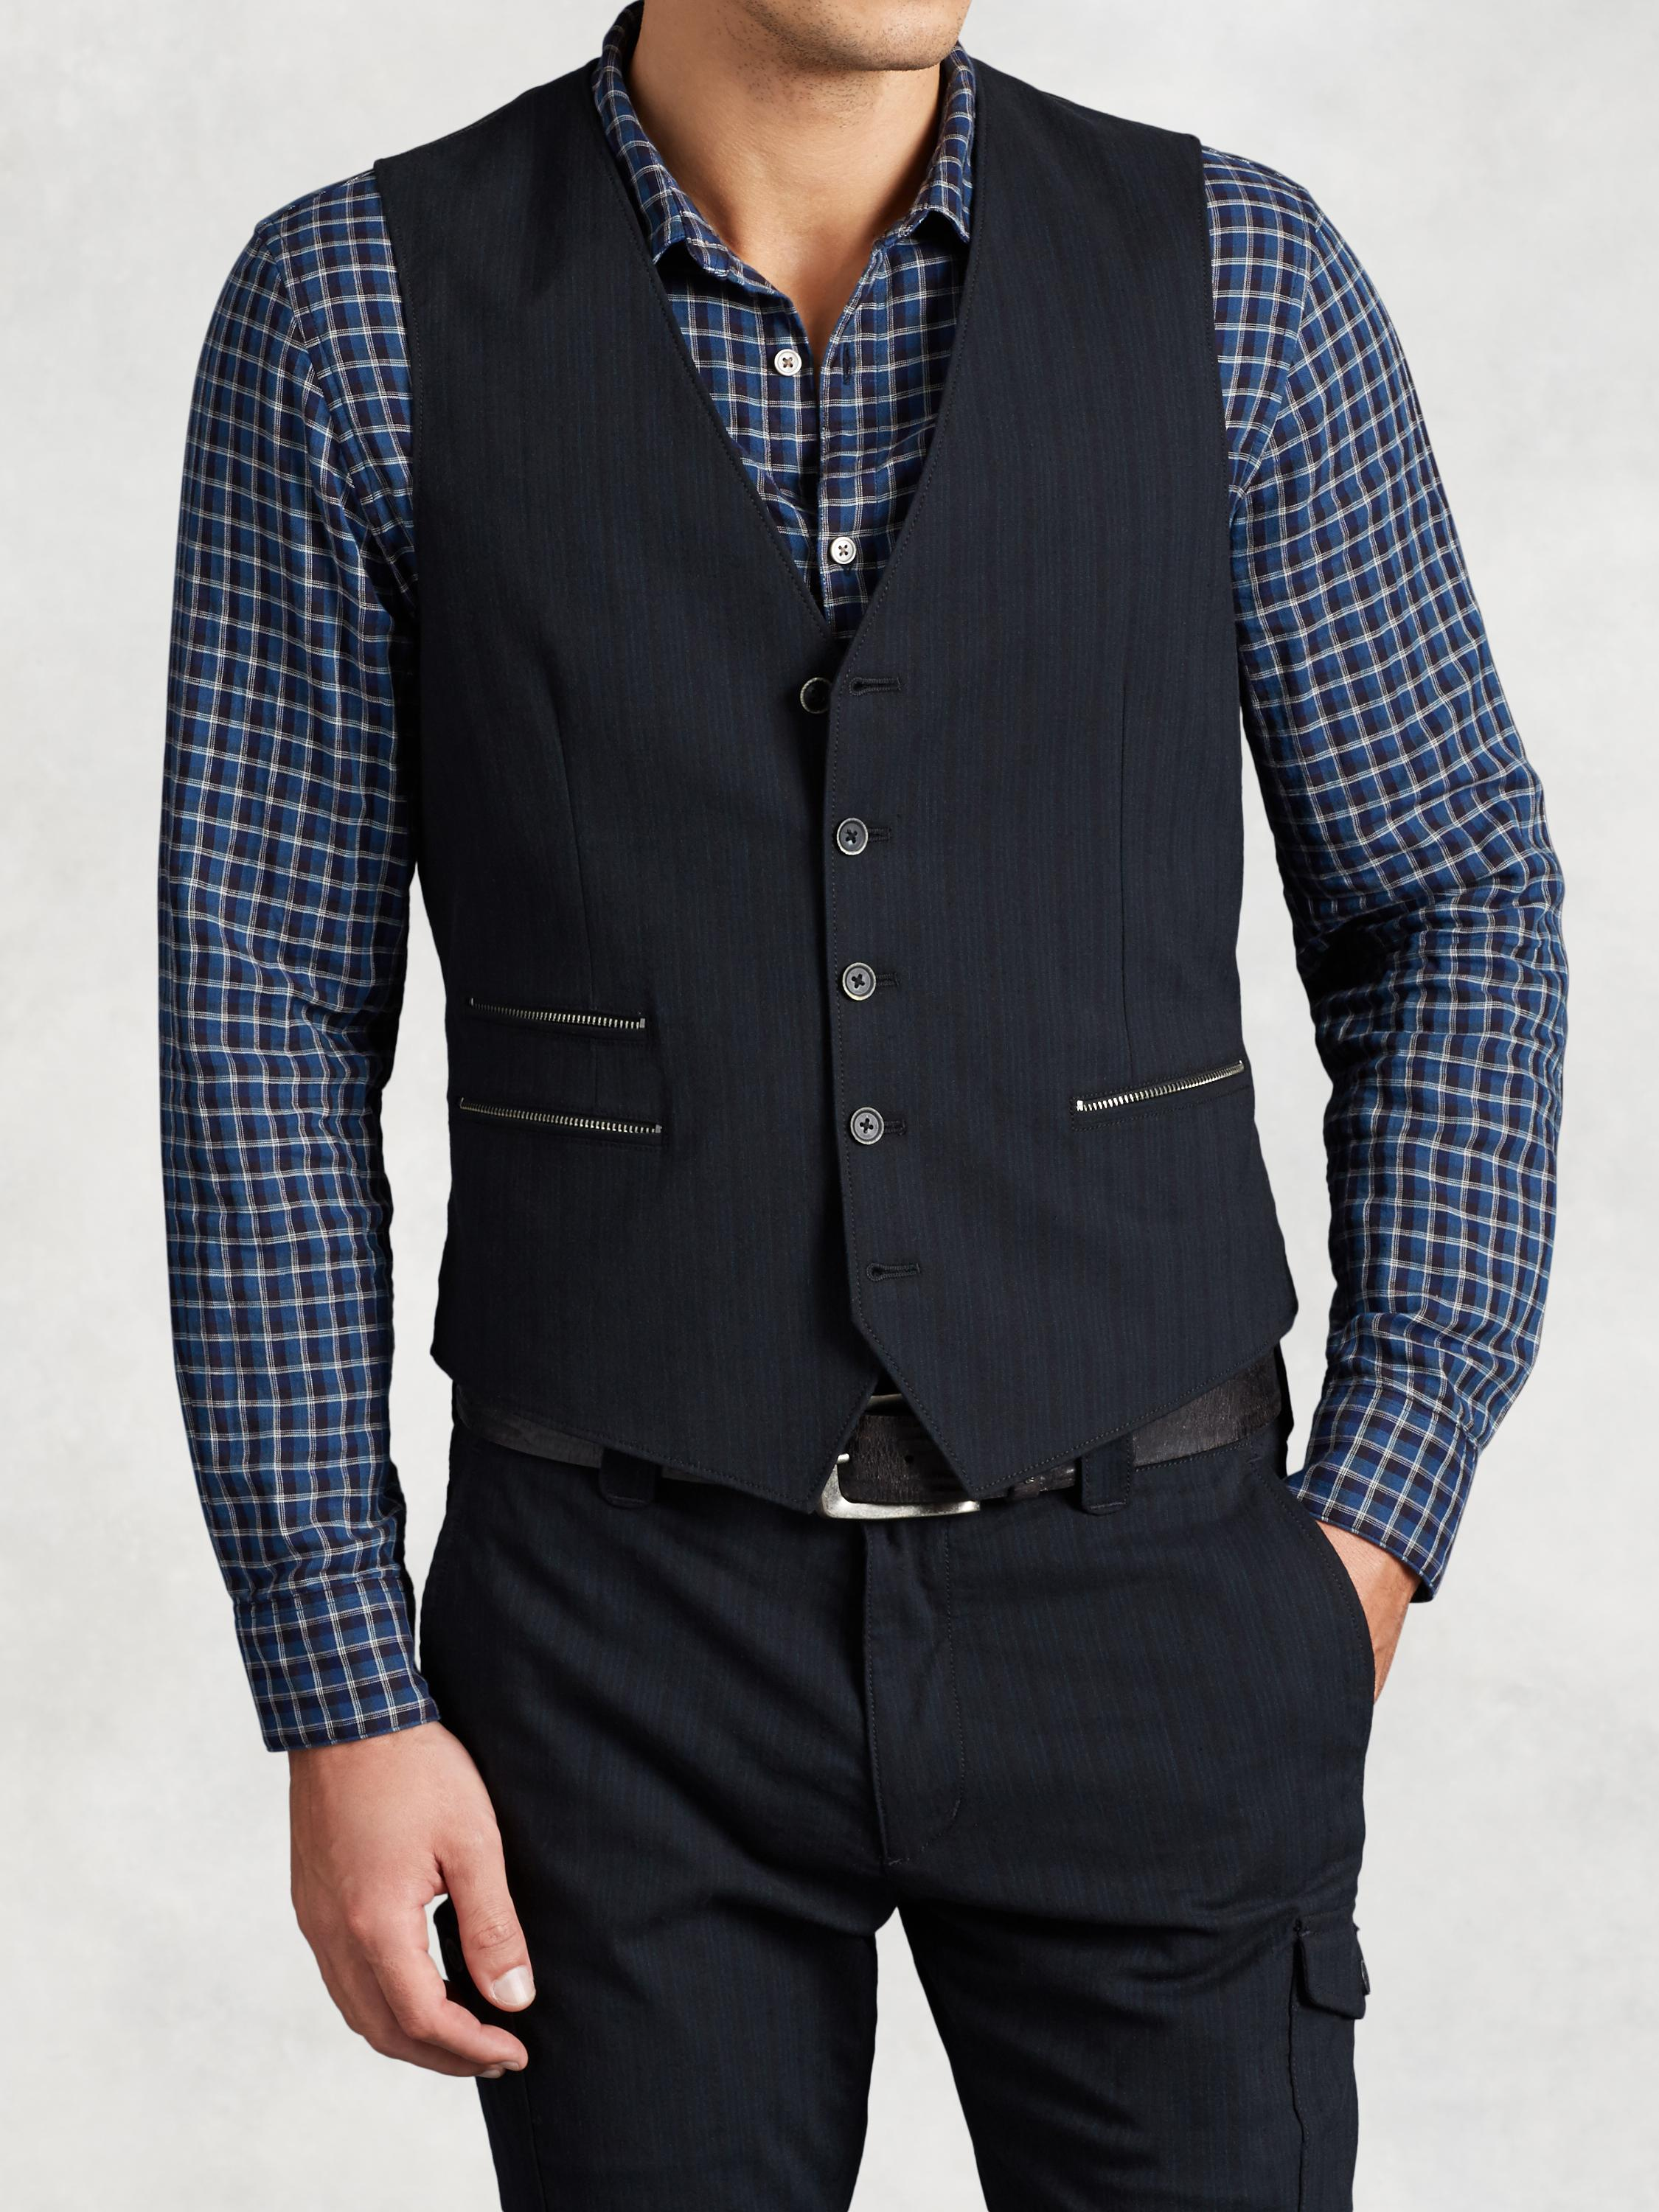 Zip Pocket Vest